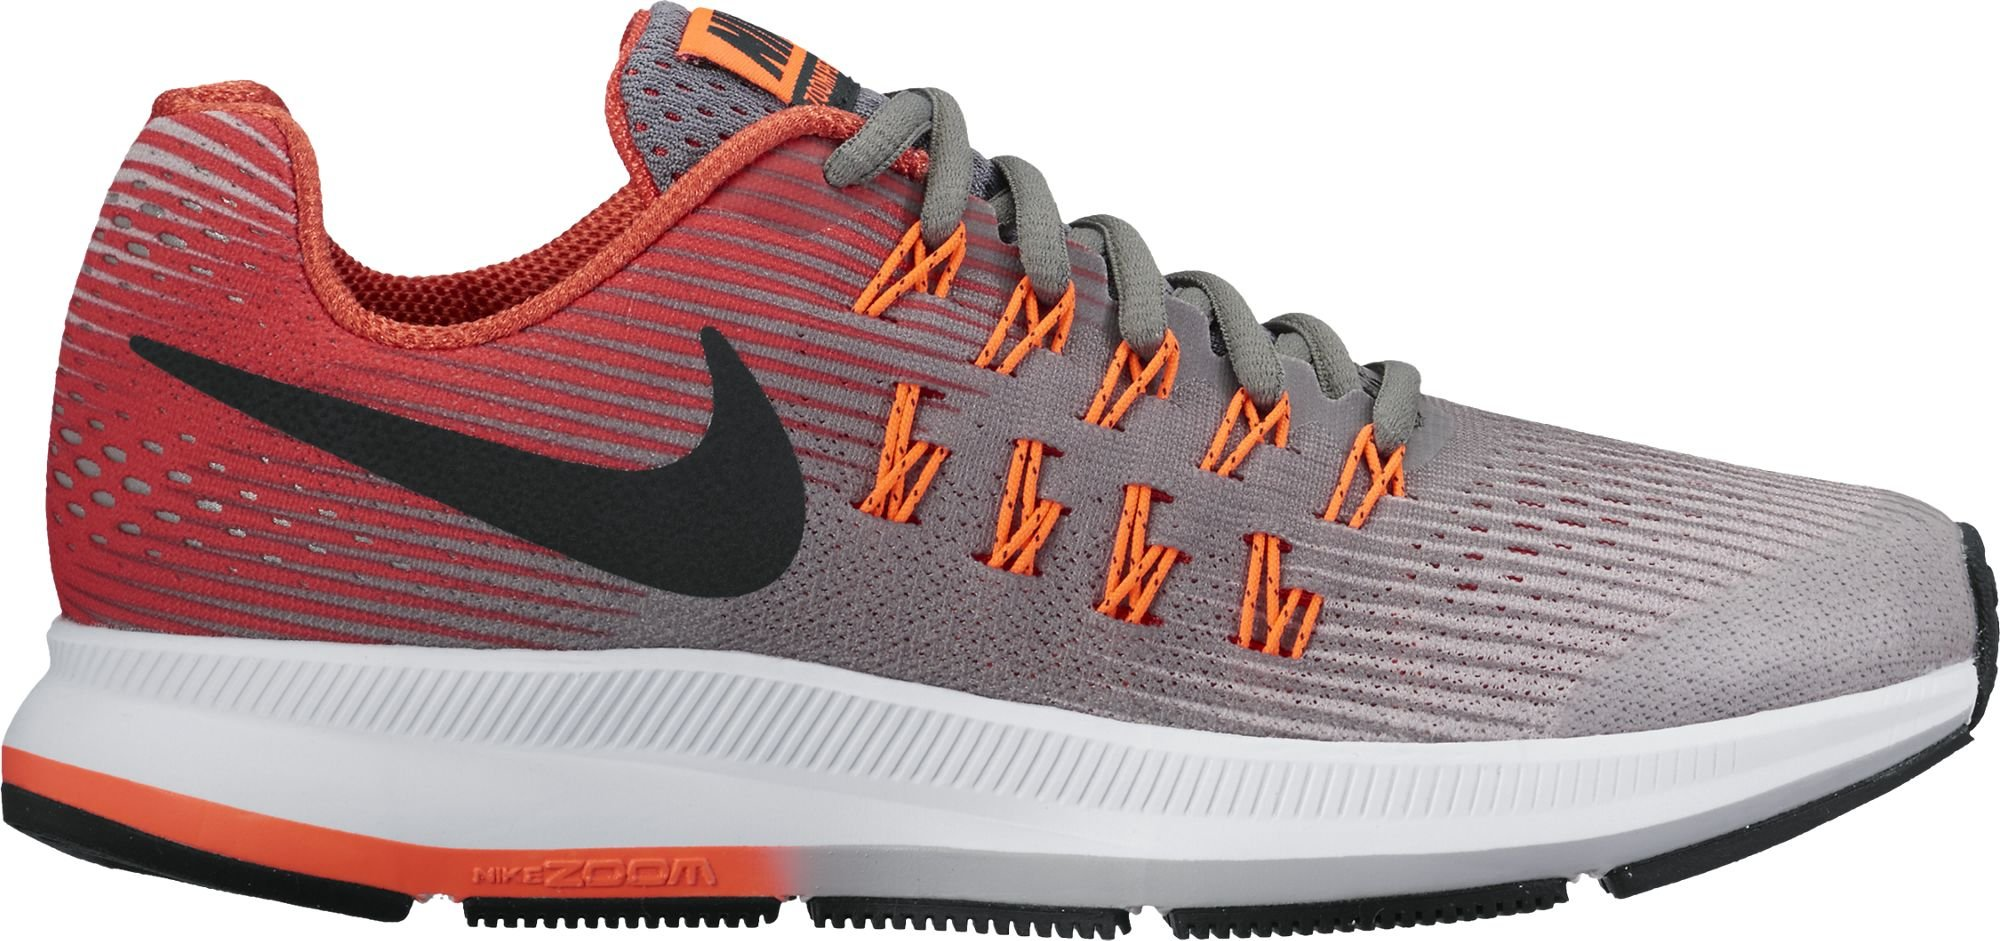 Nike Boy's Zoom Pegasus 33 (GS) Running Shoe (3.5Y-7Y) Cool Grey/Black/Wolf Grey/Track Red Size 5.5 M US by NIKE